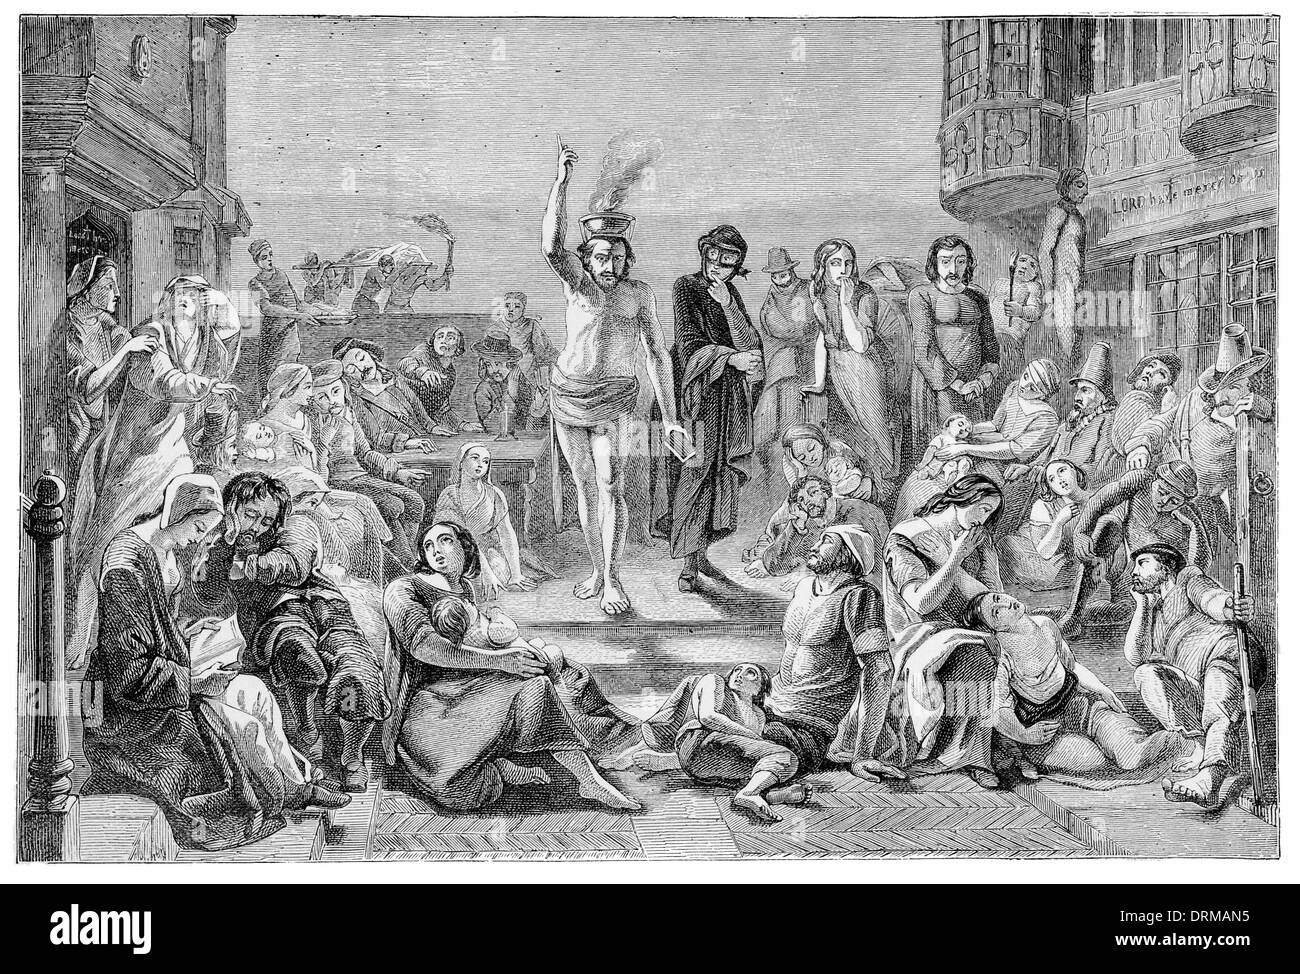 The Great Plague. London. Solomon Eagle exhorting the people to repentance 1665 Stock Photo